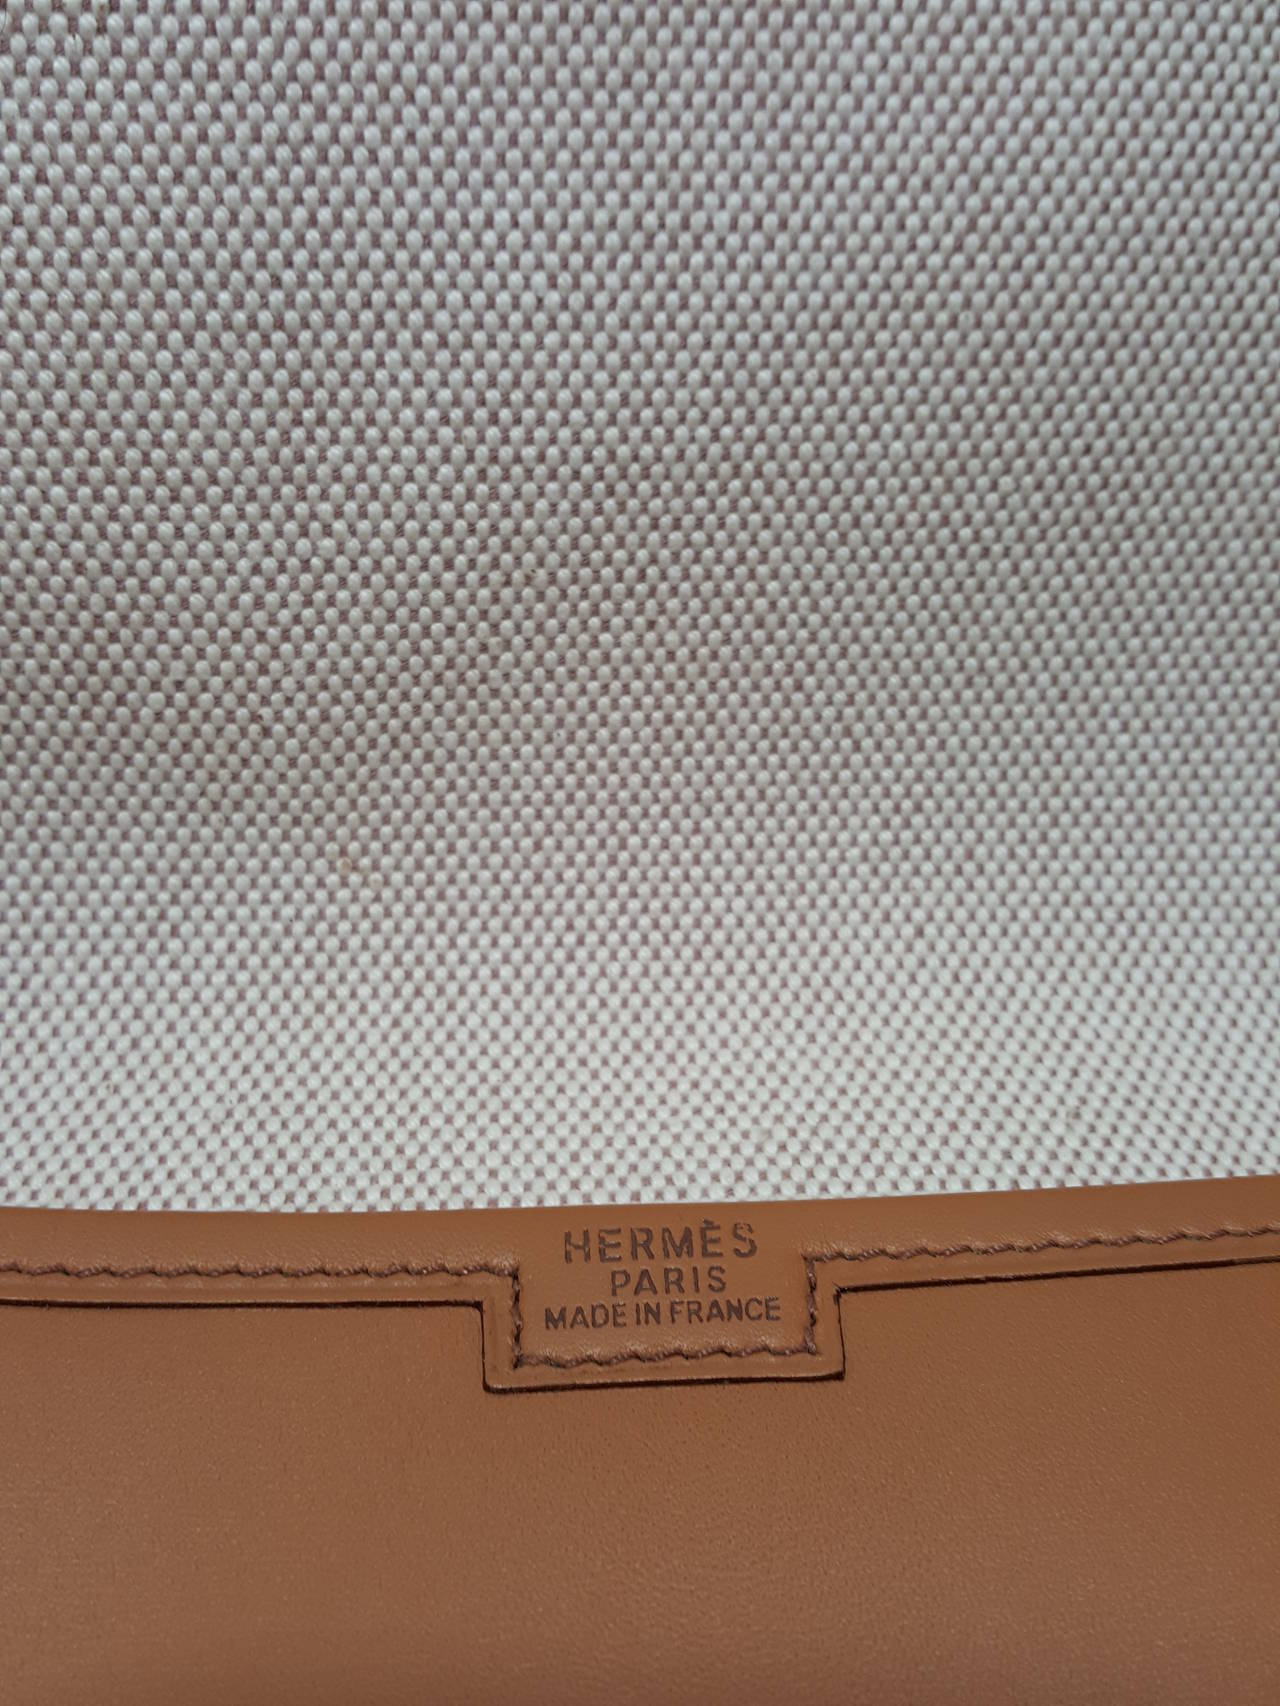 Women's or Men's HERMES Large Golden Jige Clutch in perfect Condition. For Sale